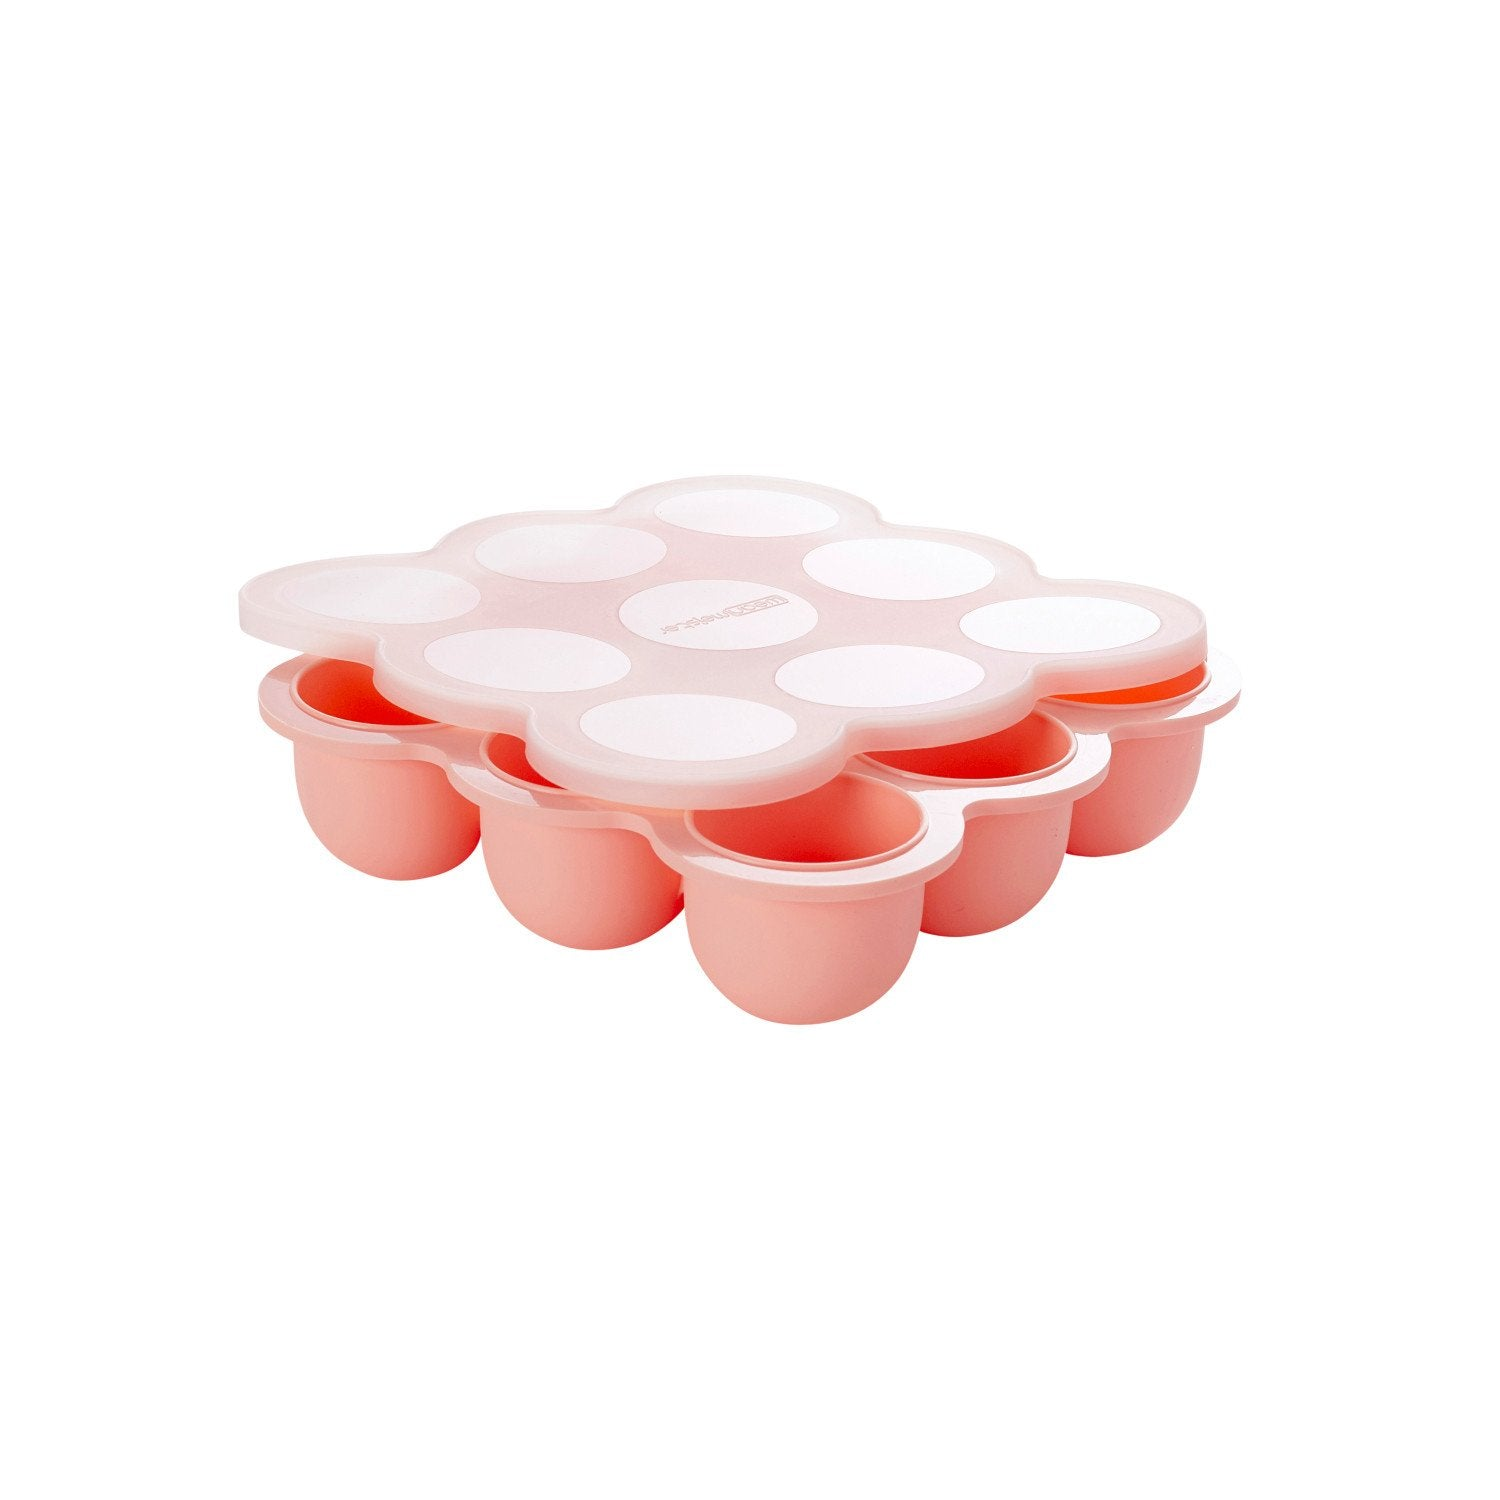 Wean Meister Silicone Baby Food Storage Pods Wean Meister Baby Feeding Peach at Little Earth Nest Eco Shop